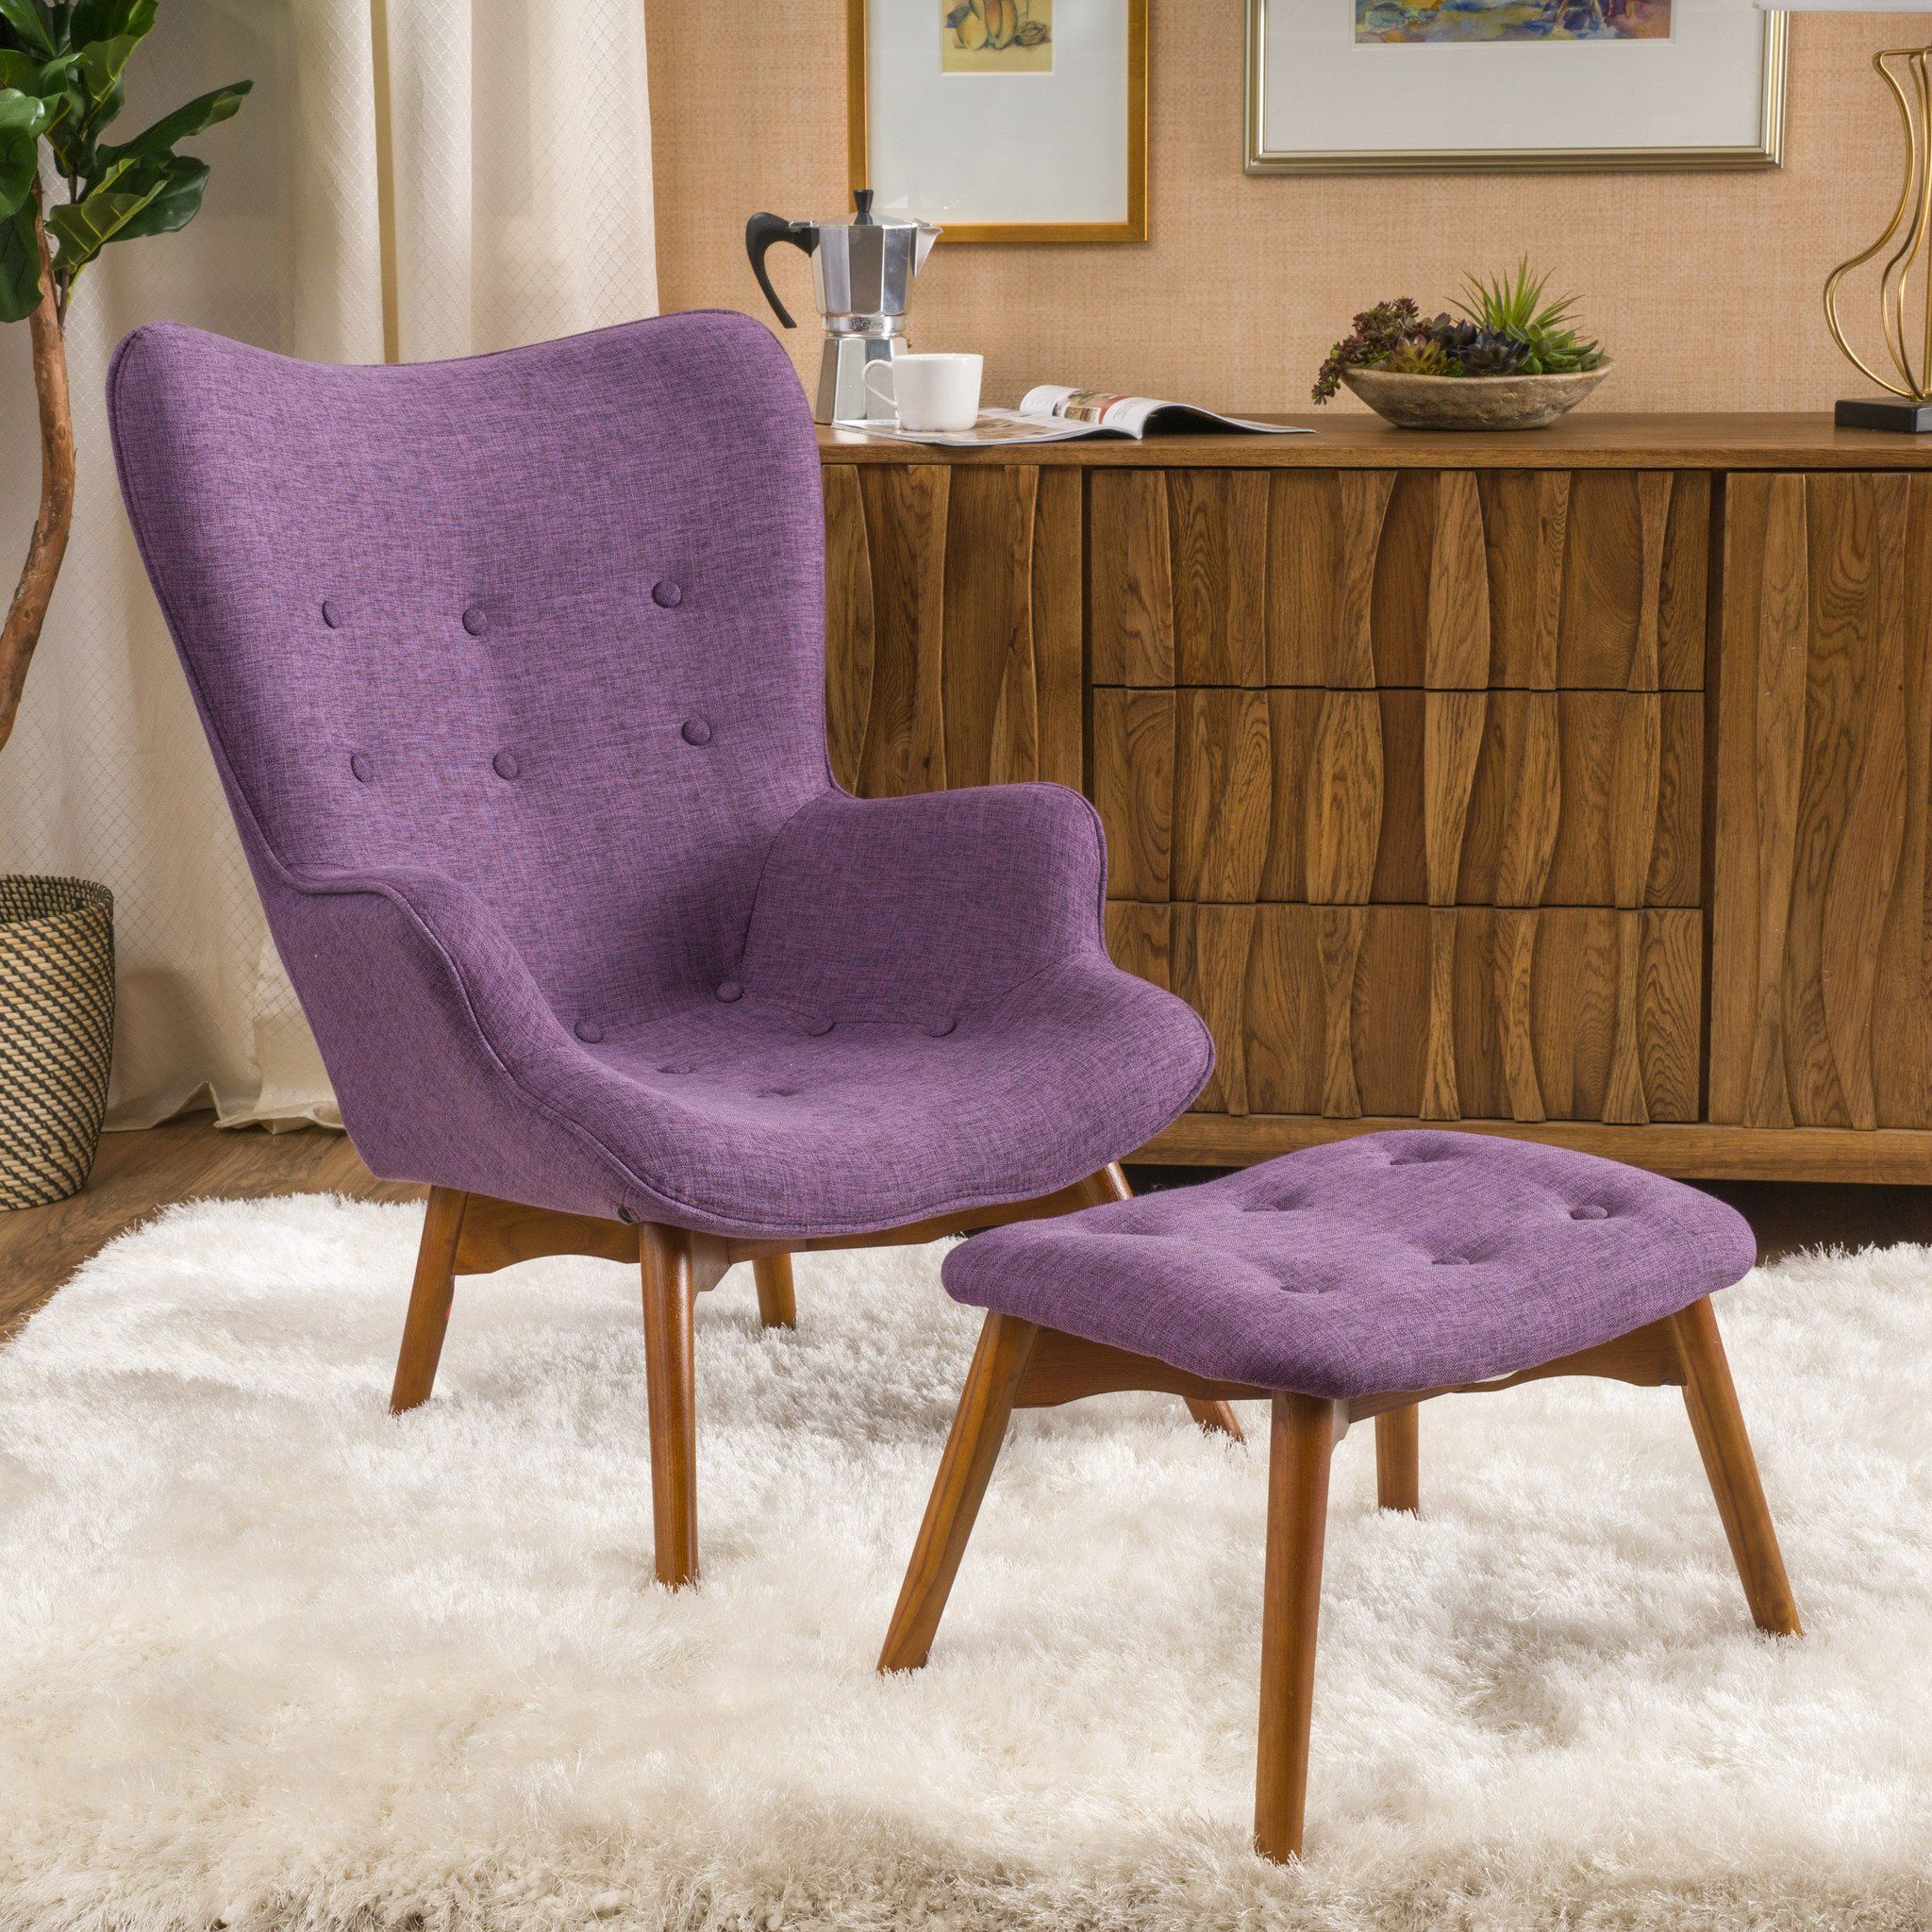 Acantha MidCentury Modern Wingback Fabric Chair and